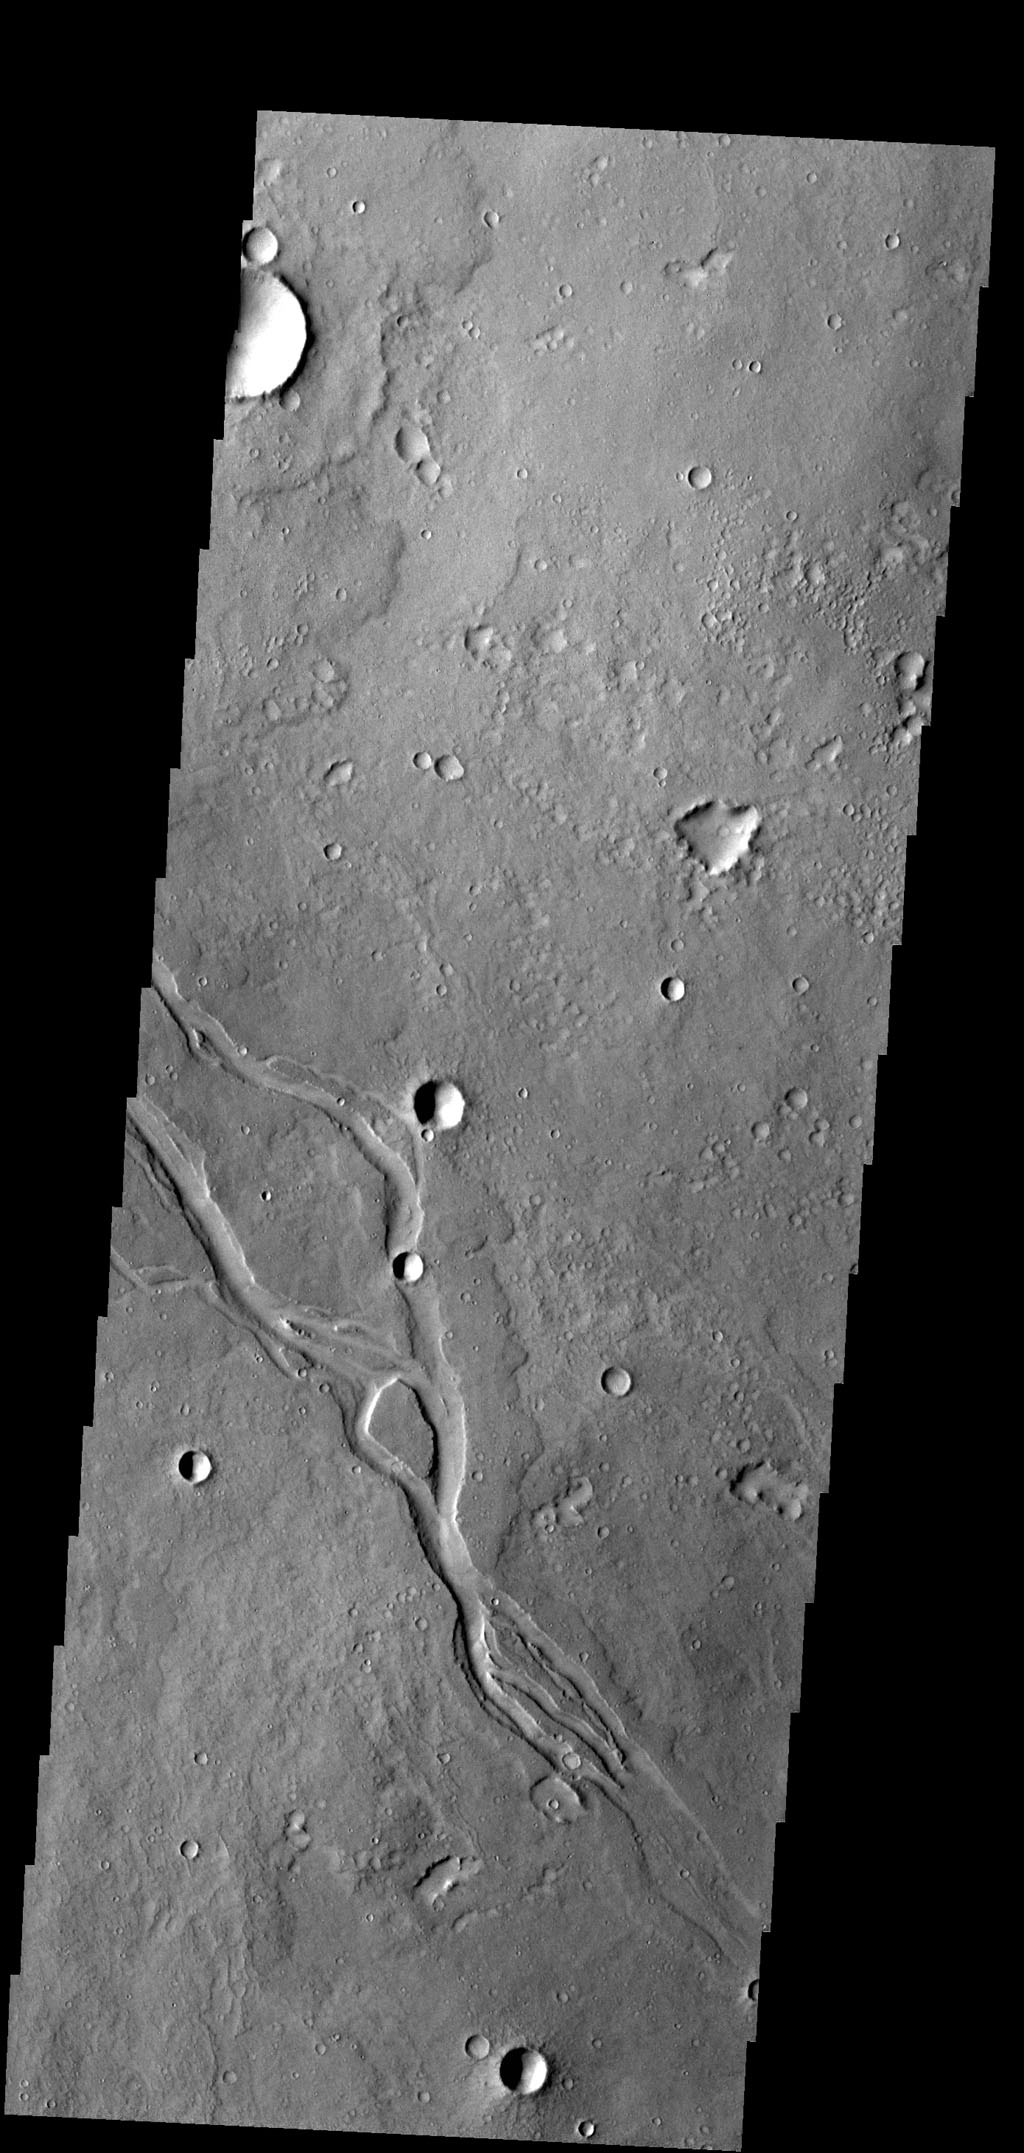 The channels in this image captured by NASA's 2001 Mars Odyssey spacecraft are located in Elysium Planitia and were likely created by lava flow.